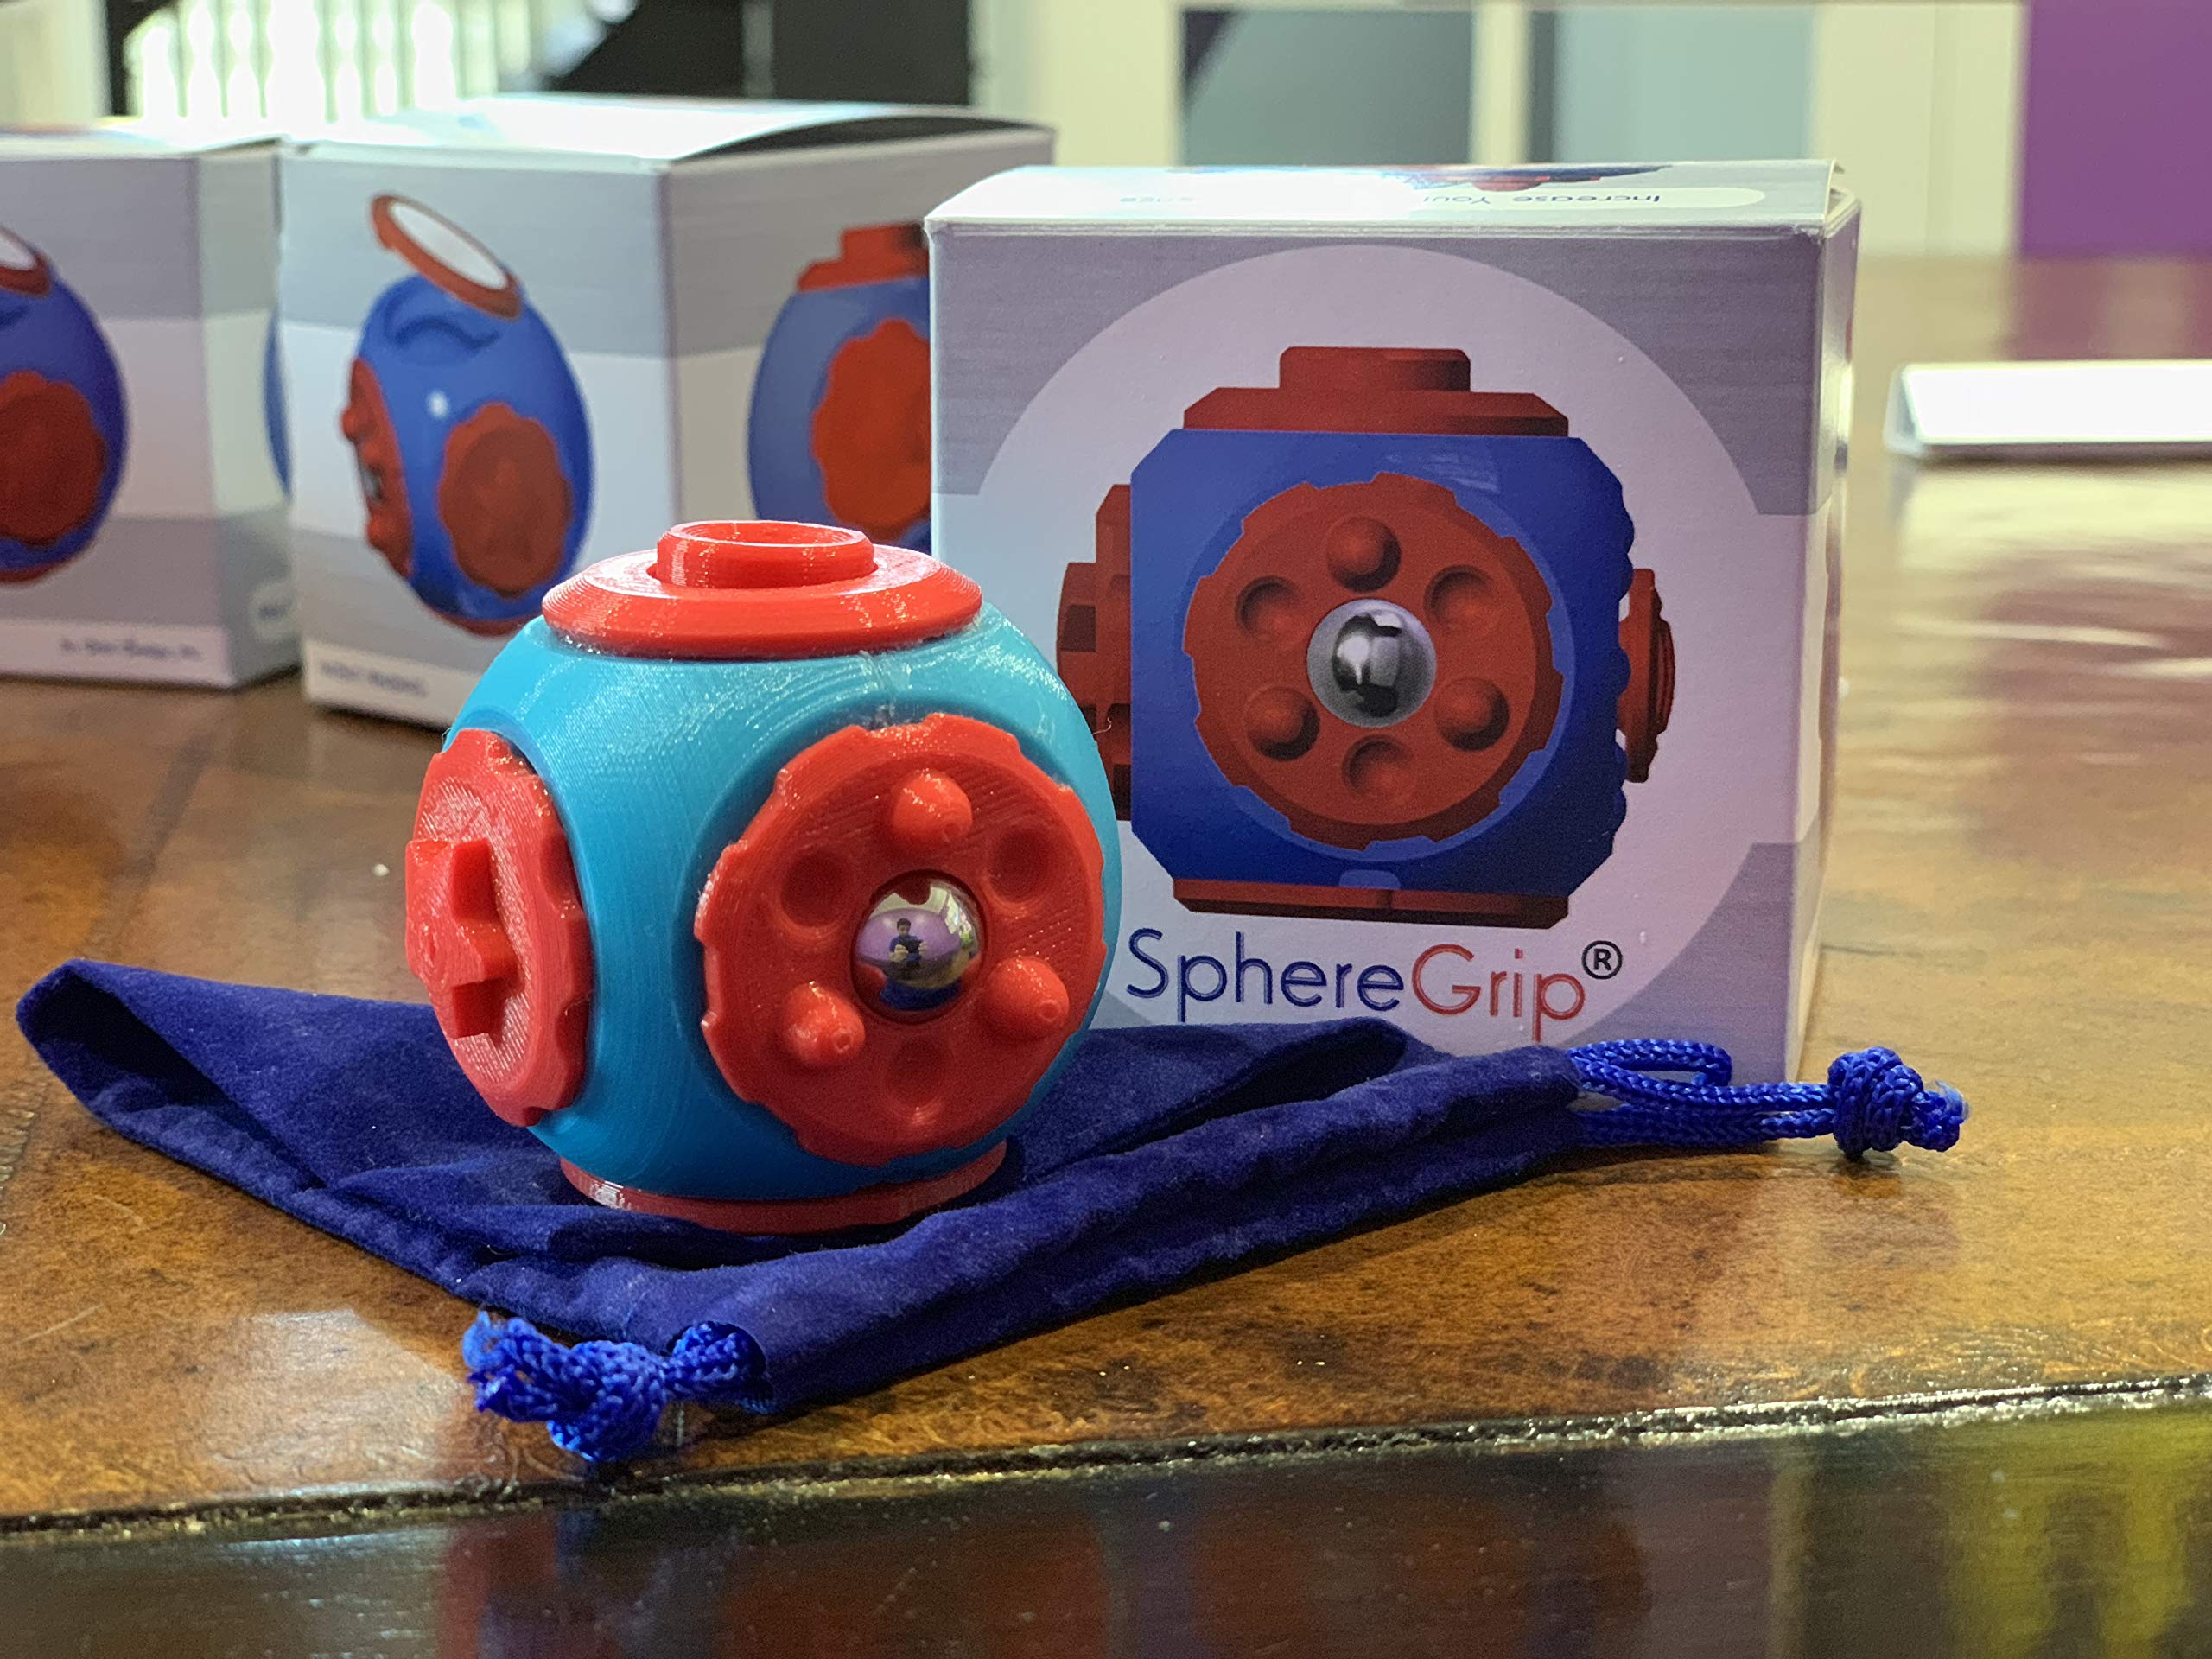 SphereGrip, Fidget toy, Reduce Anxiety and Stress, Increase Self-confidence, Fidget, Storage, Mirror (All 6 combinations) by Arbi Design (Image #8)